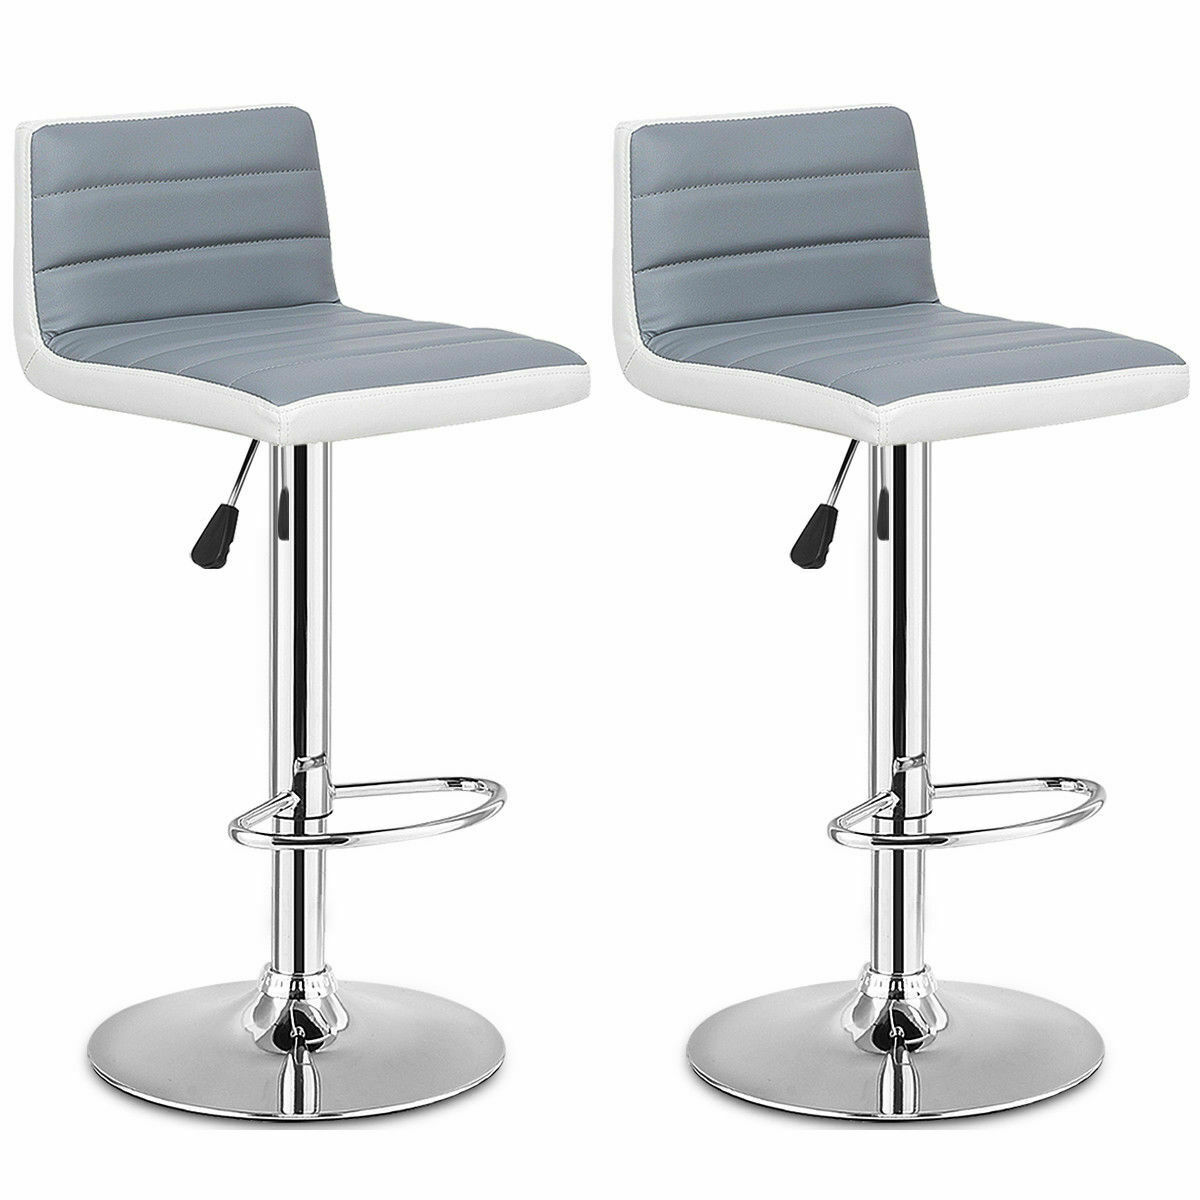 Costway Set Of 2 Bar Stools Adjustable Barstool PU Leather Swivel Pub Chairs Armless